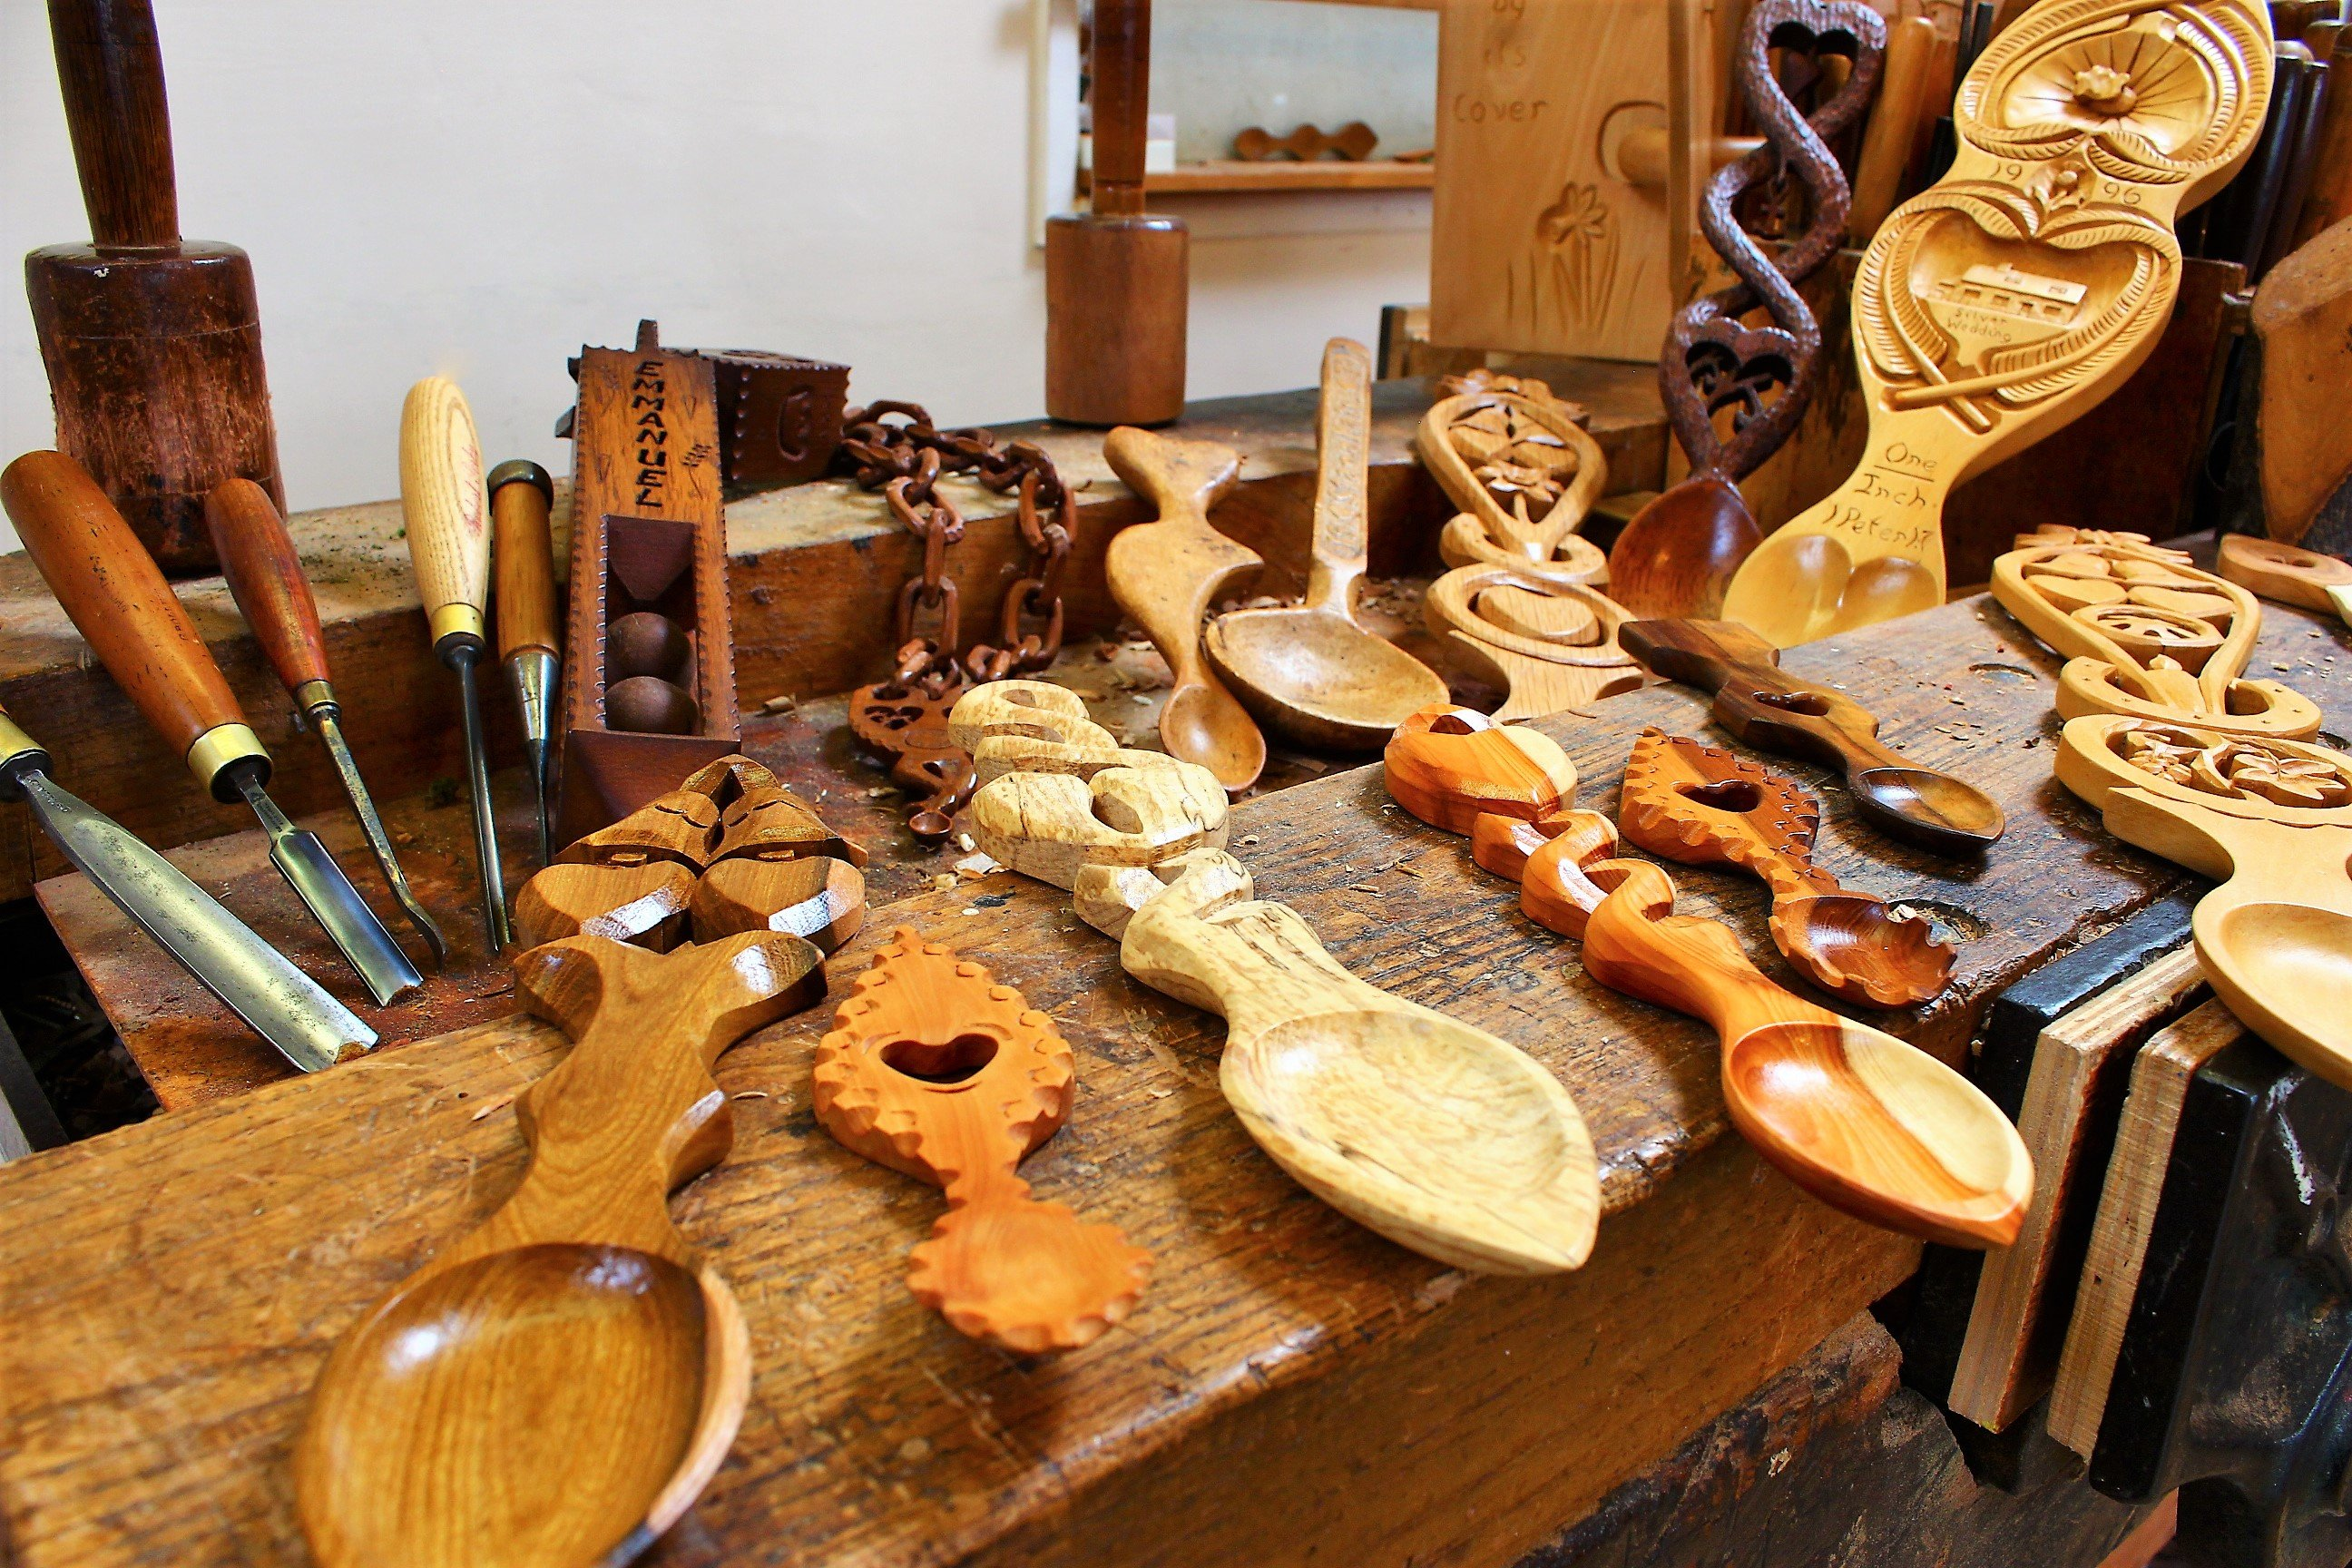 The workbench at The Lovespoon Workshop.